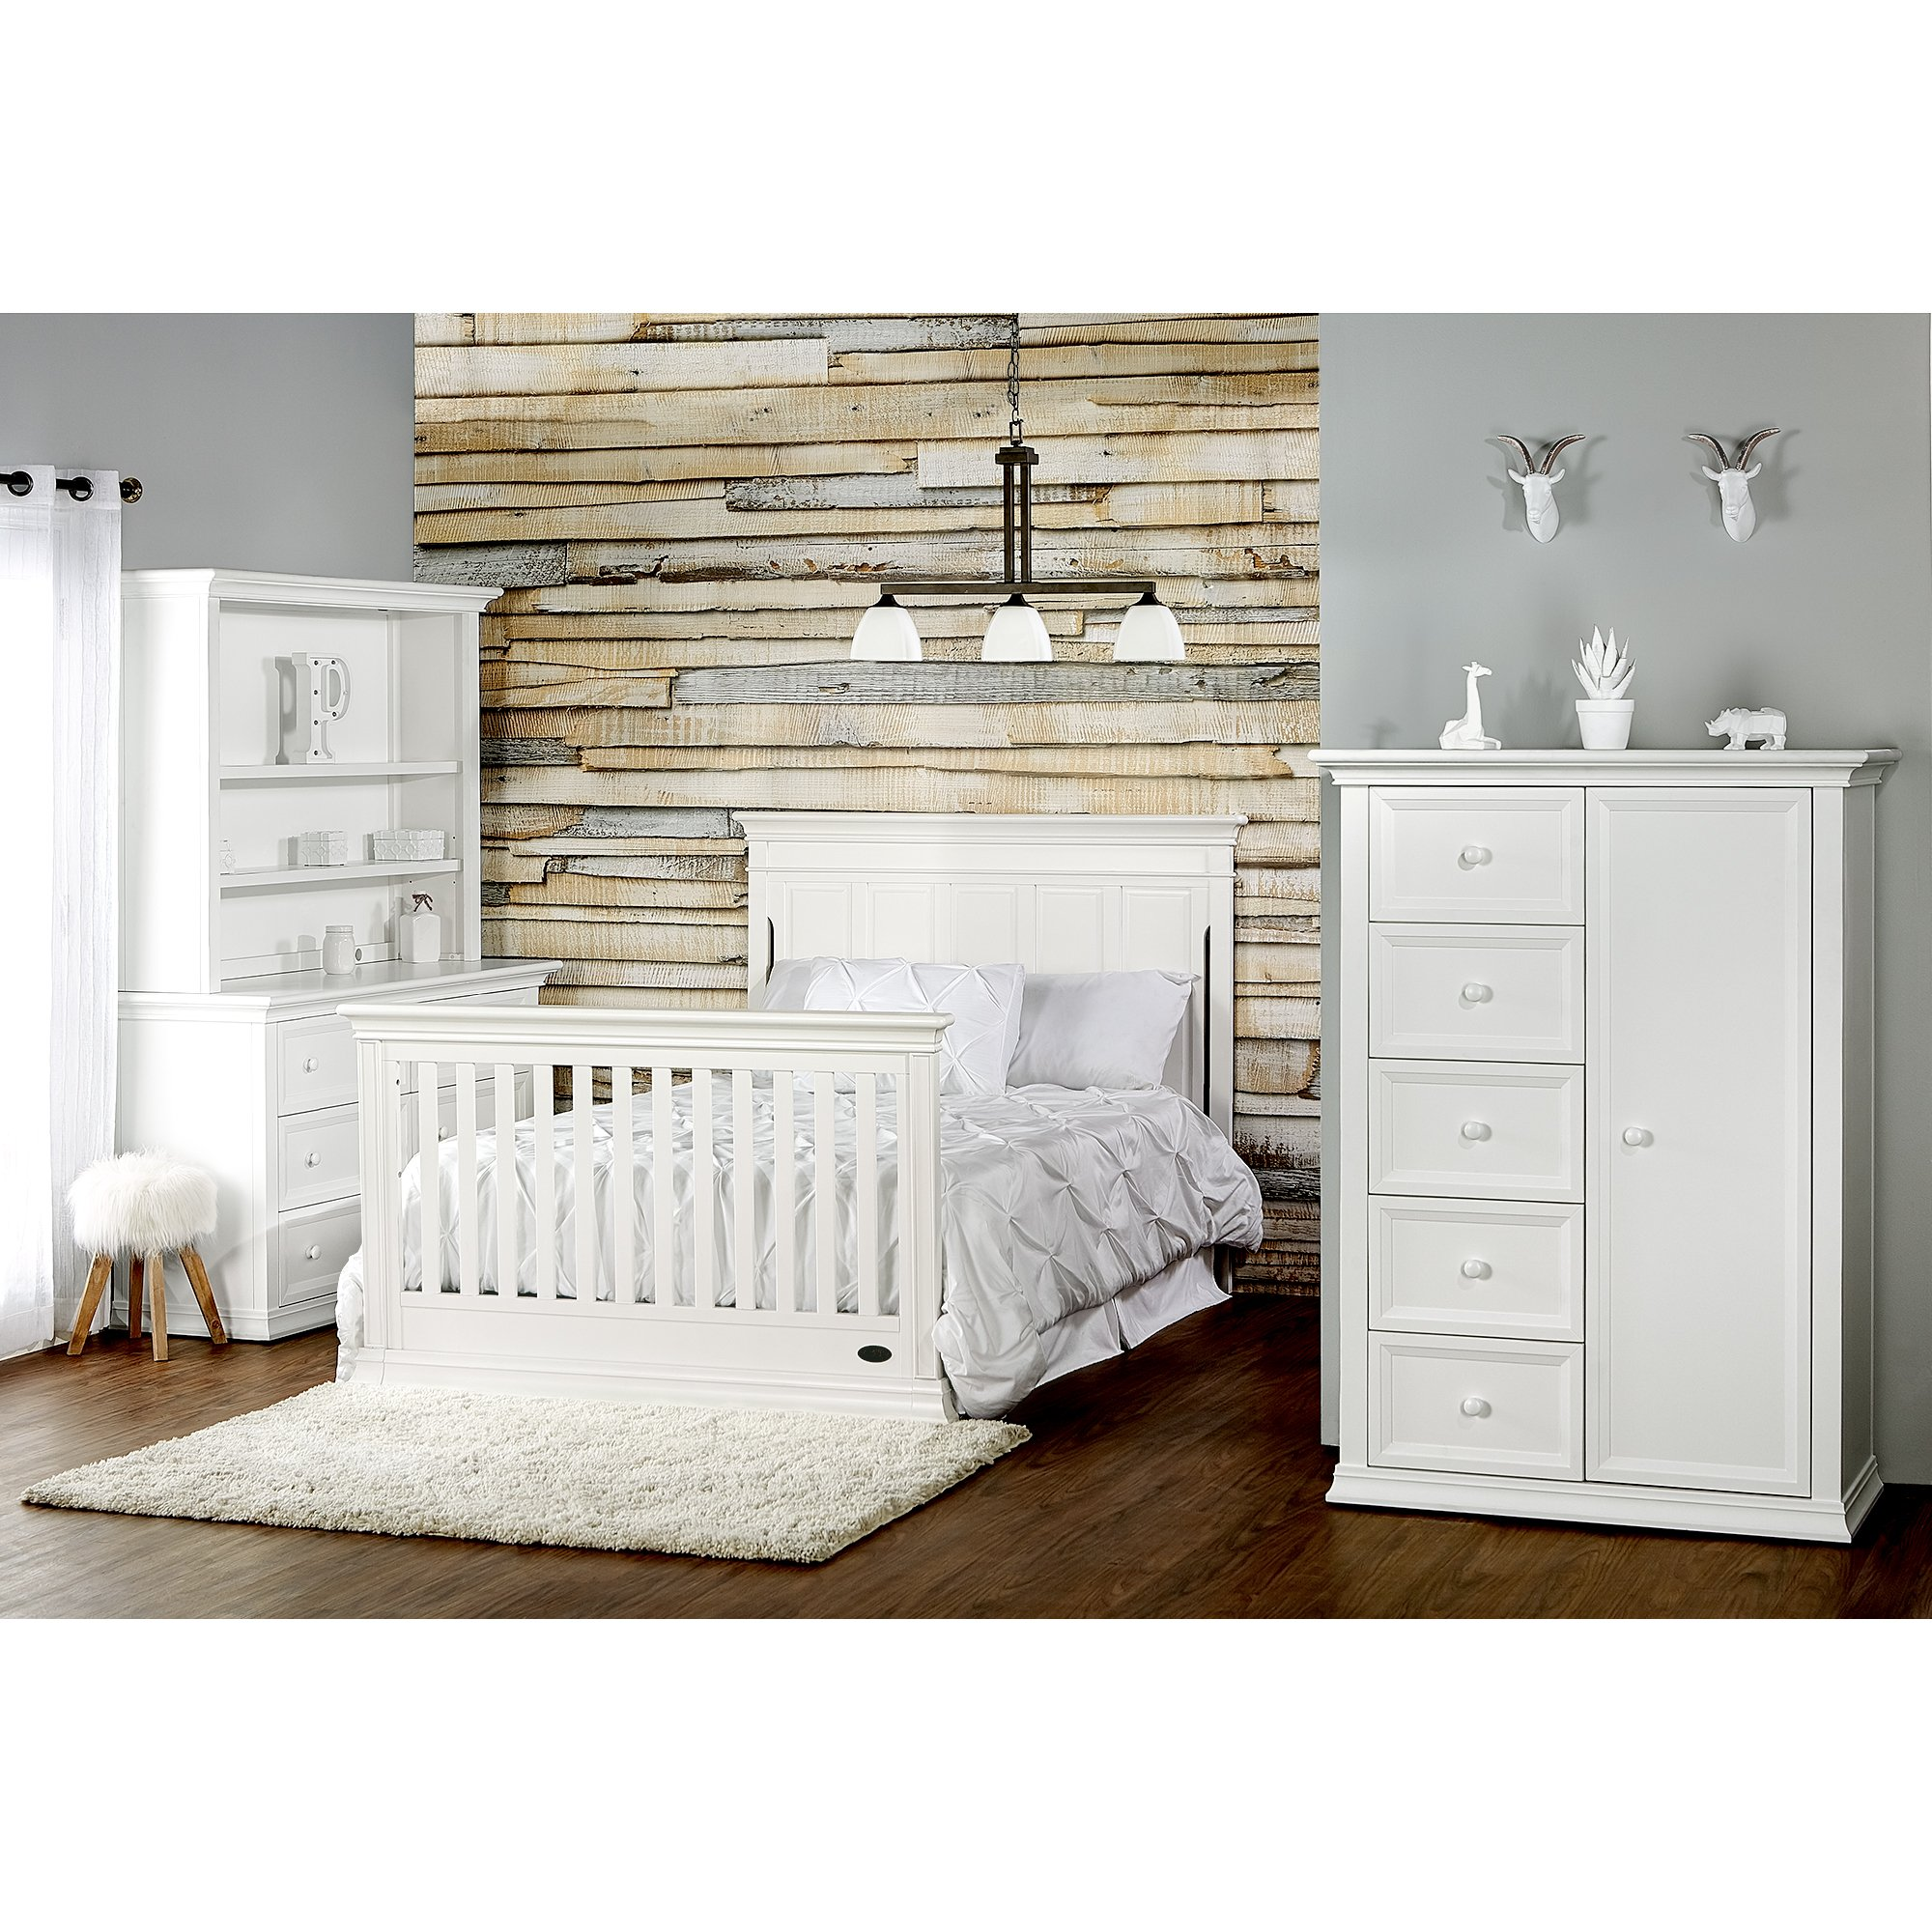 Evolur Napoli Bed Rail Distress White